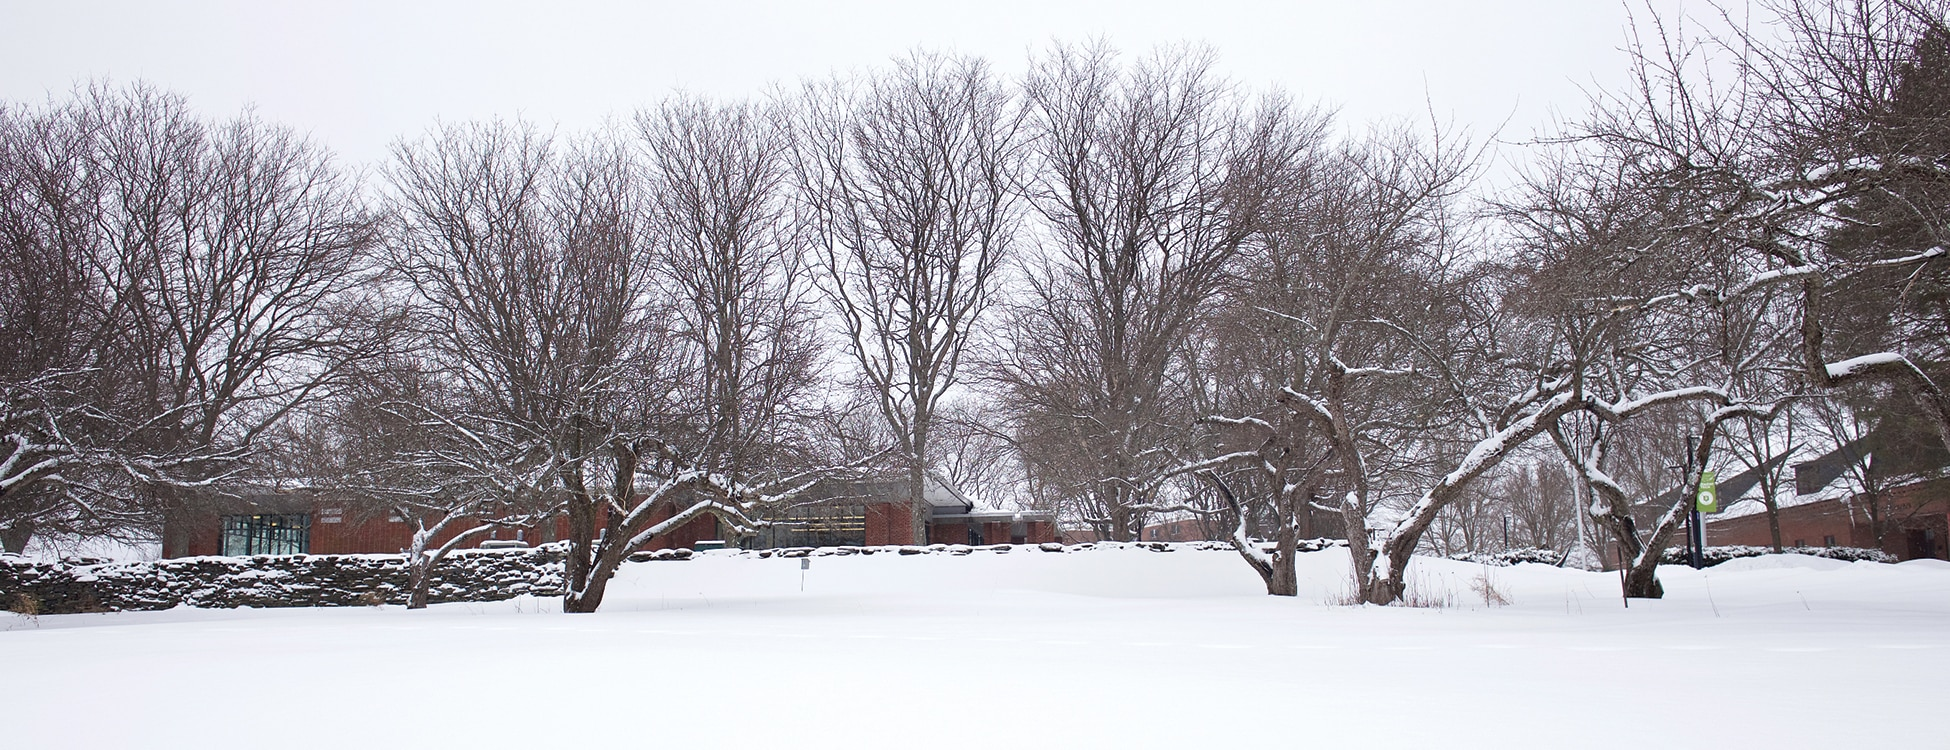 Winter, Randolph Center campus, snow, bare trees